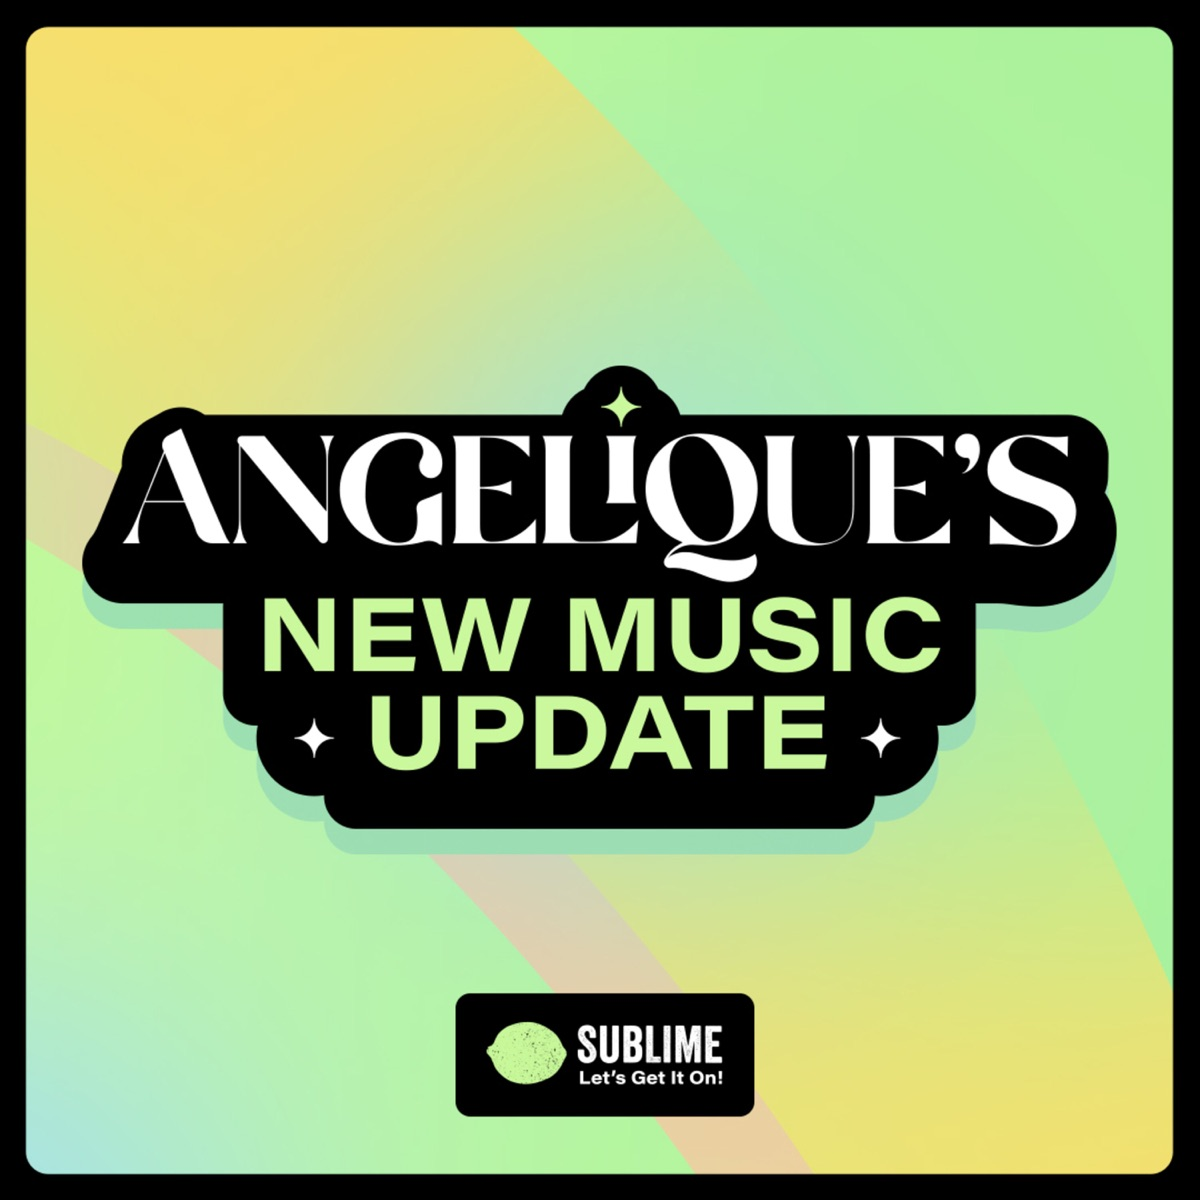 Angelique's New Music Update - Sublime